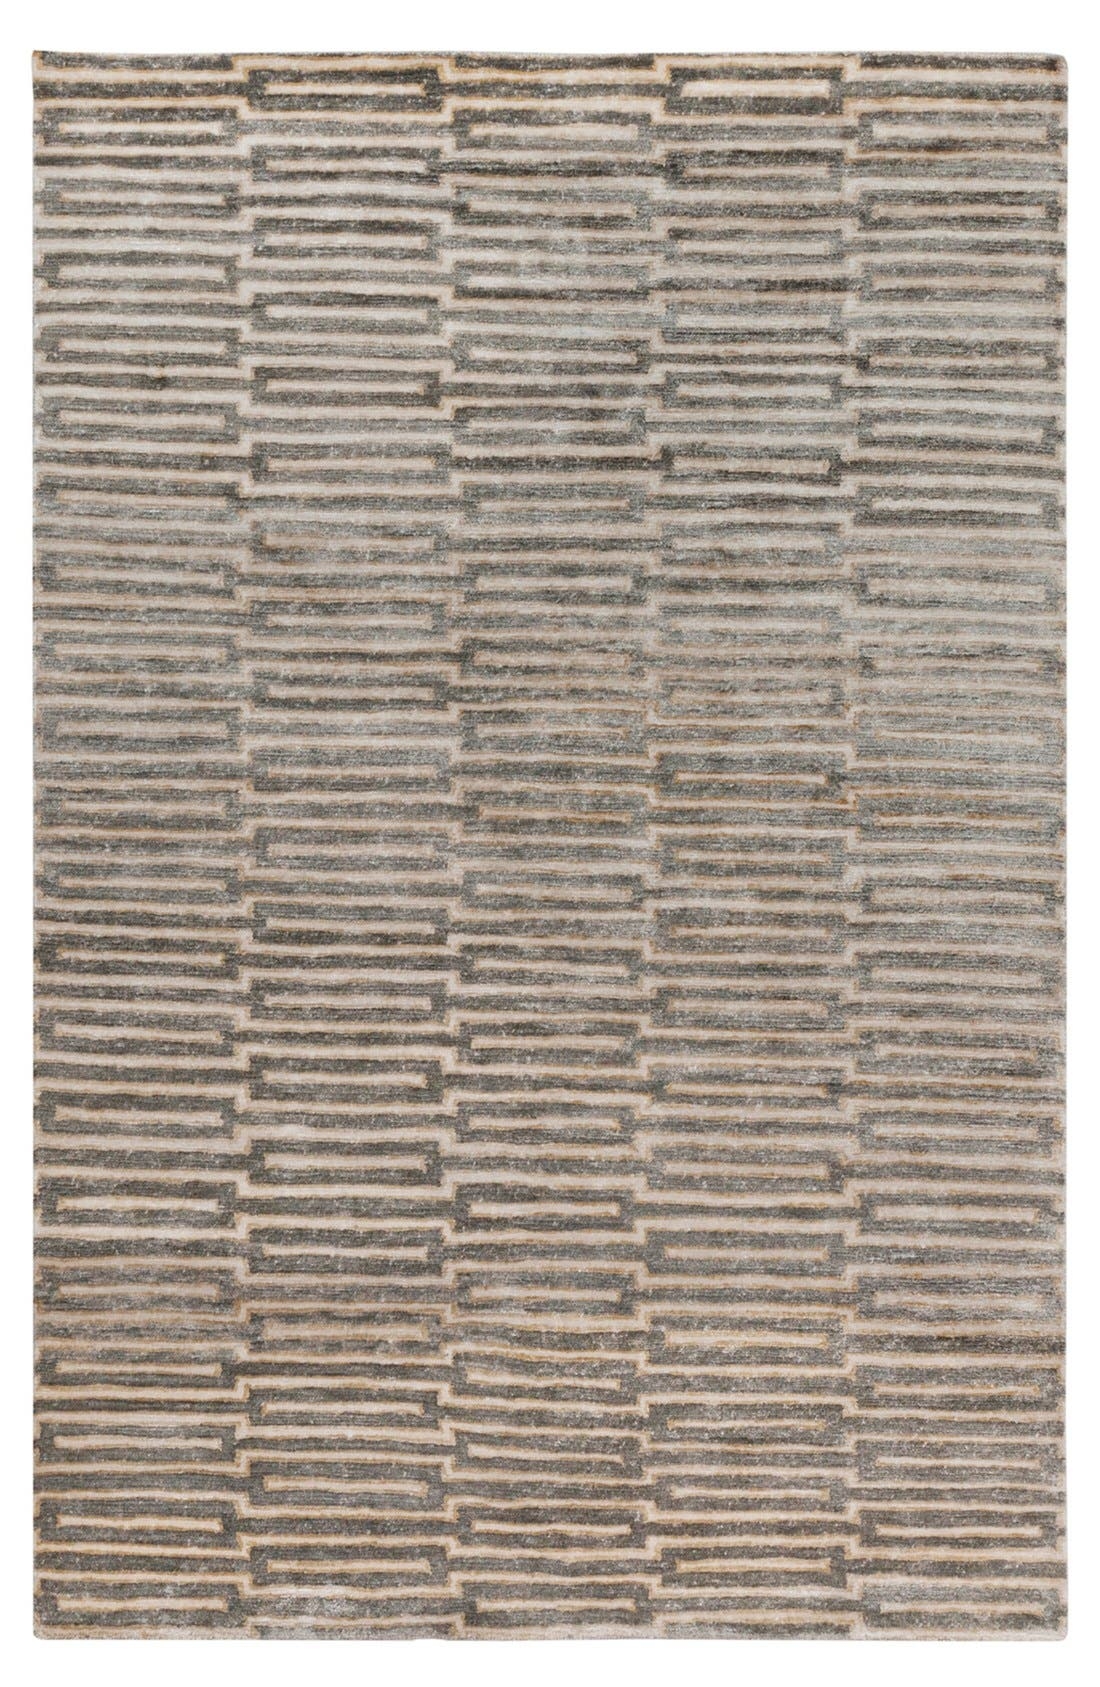 'Platinum' Hand Tufted Rug,                             Main thumbnail 1, color,                             Olive/ Beige